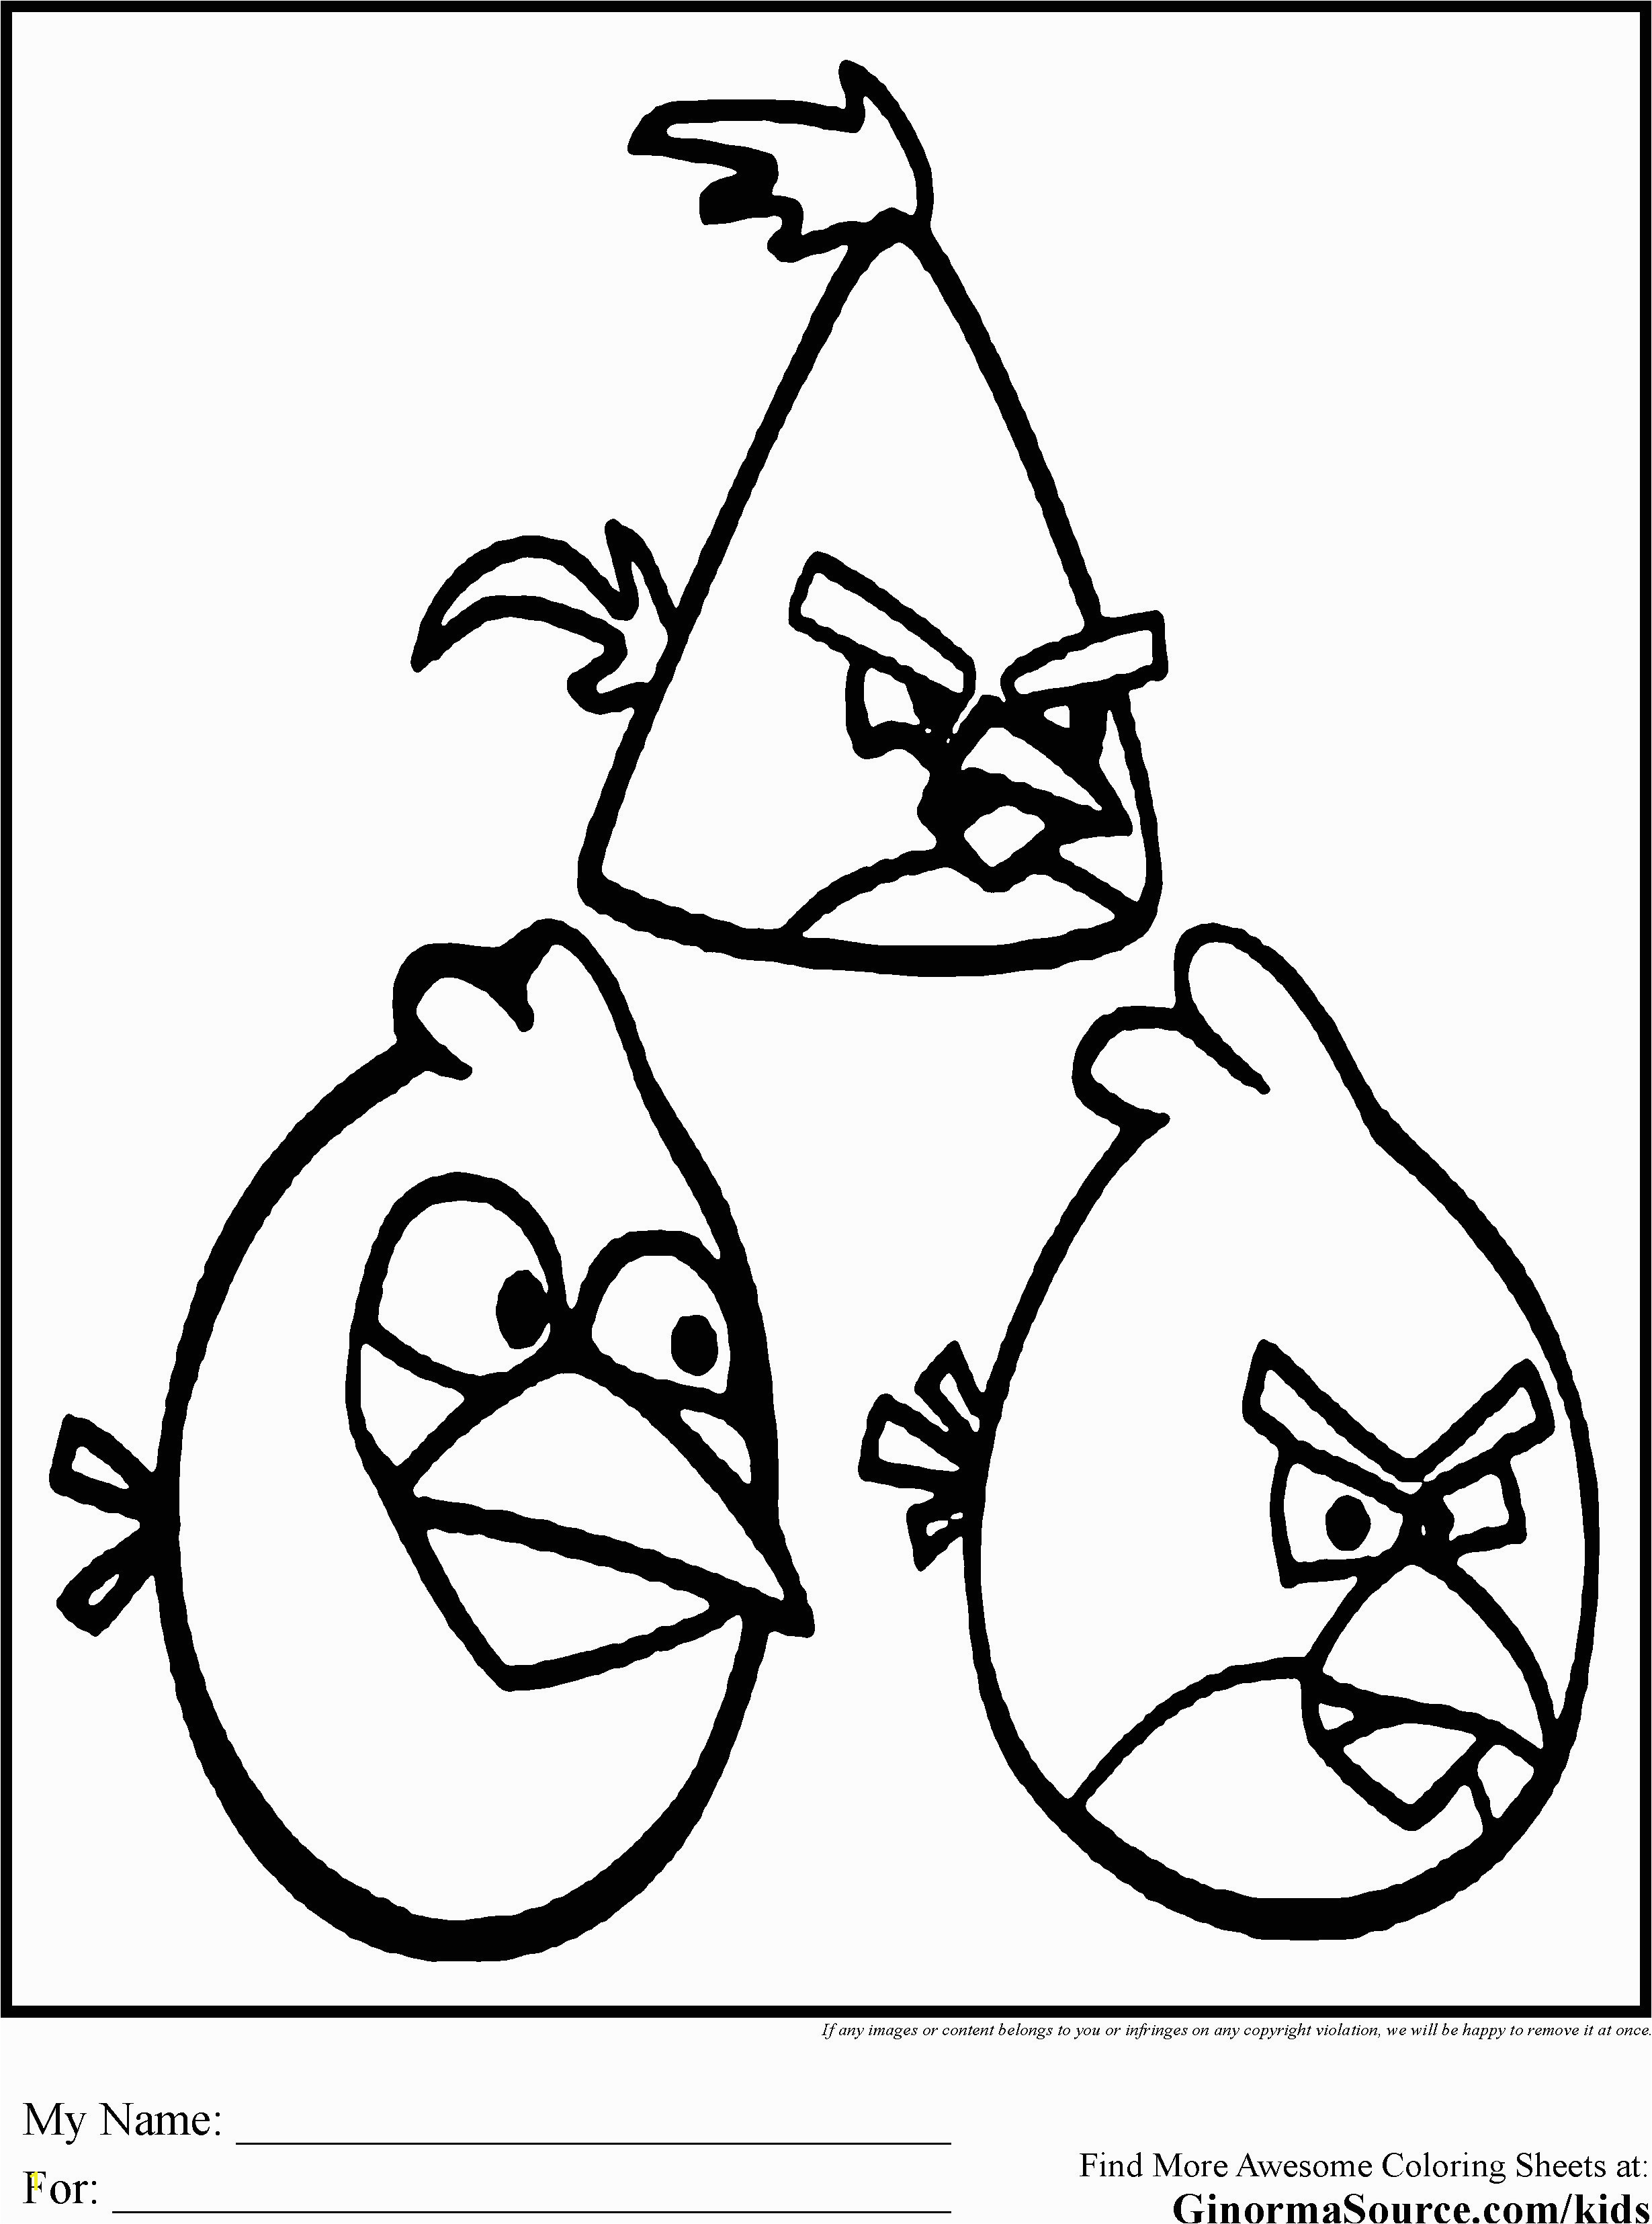 Angry Birds Coloring Pages Angry Birds Coloring Pages Free to Print Inspirierend Ausmalbilder Angry Birds